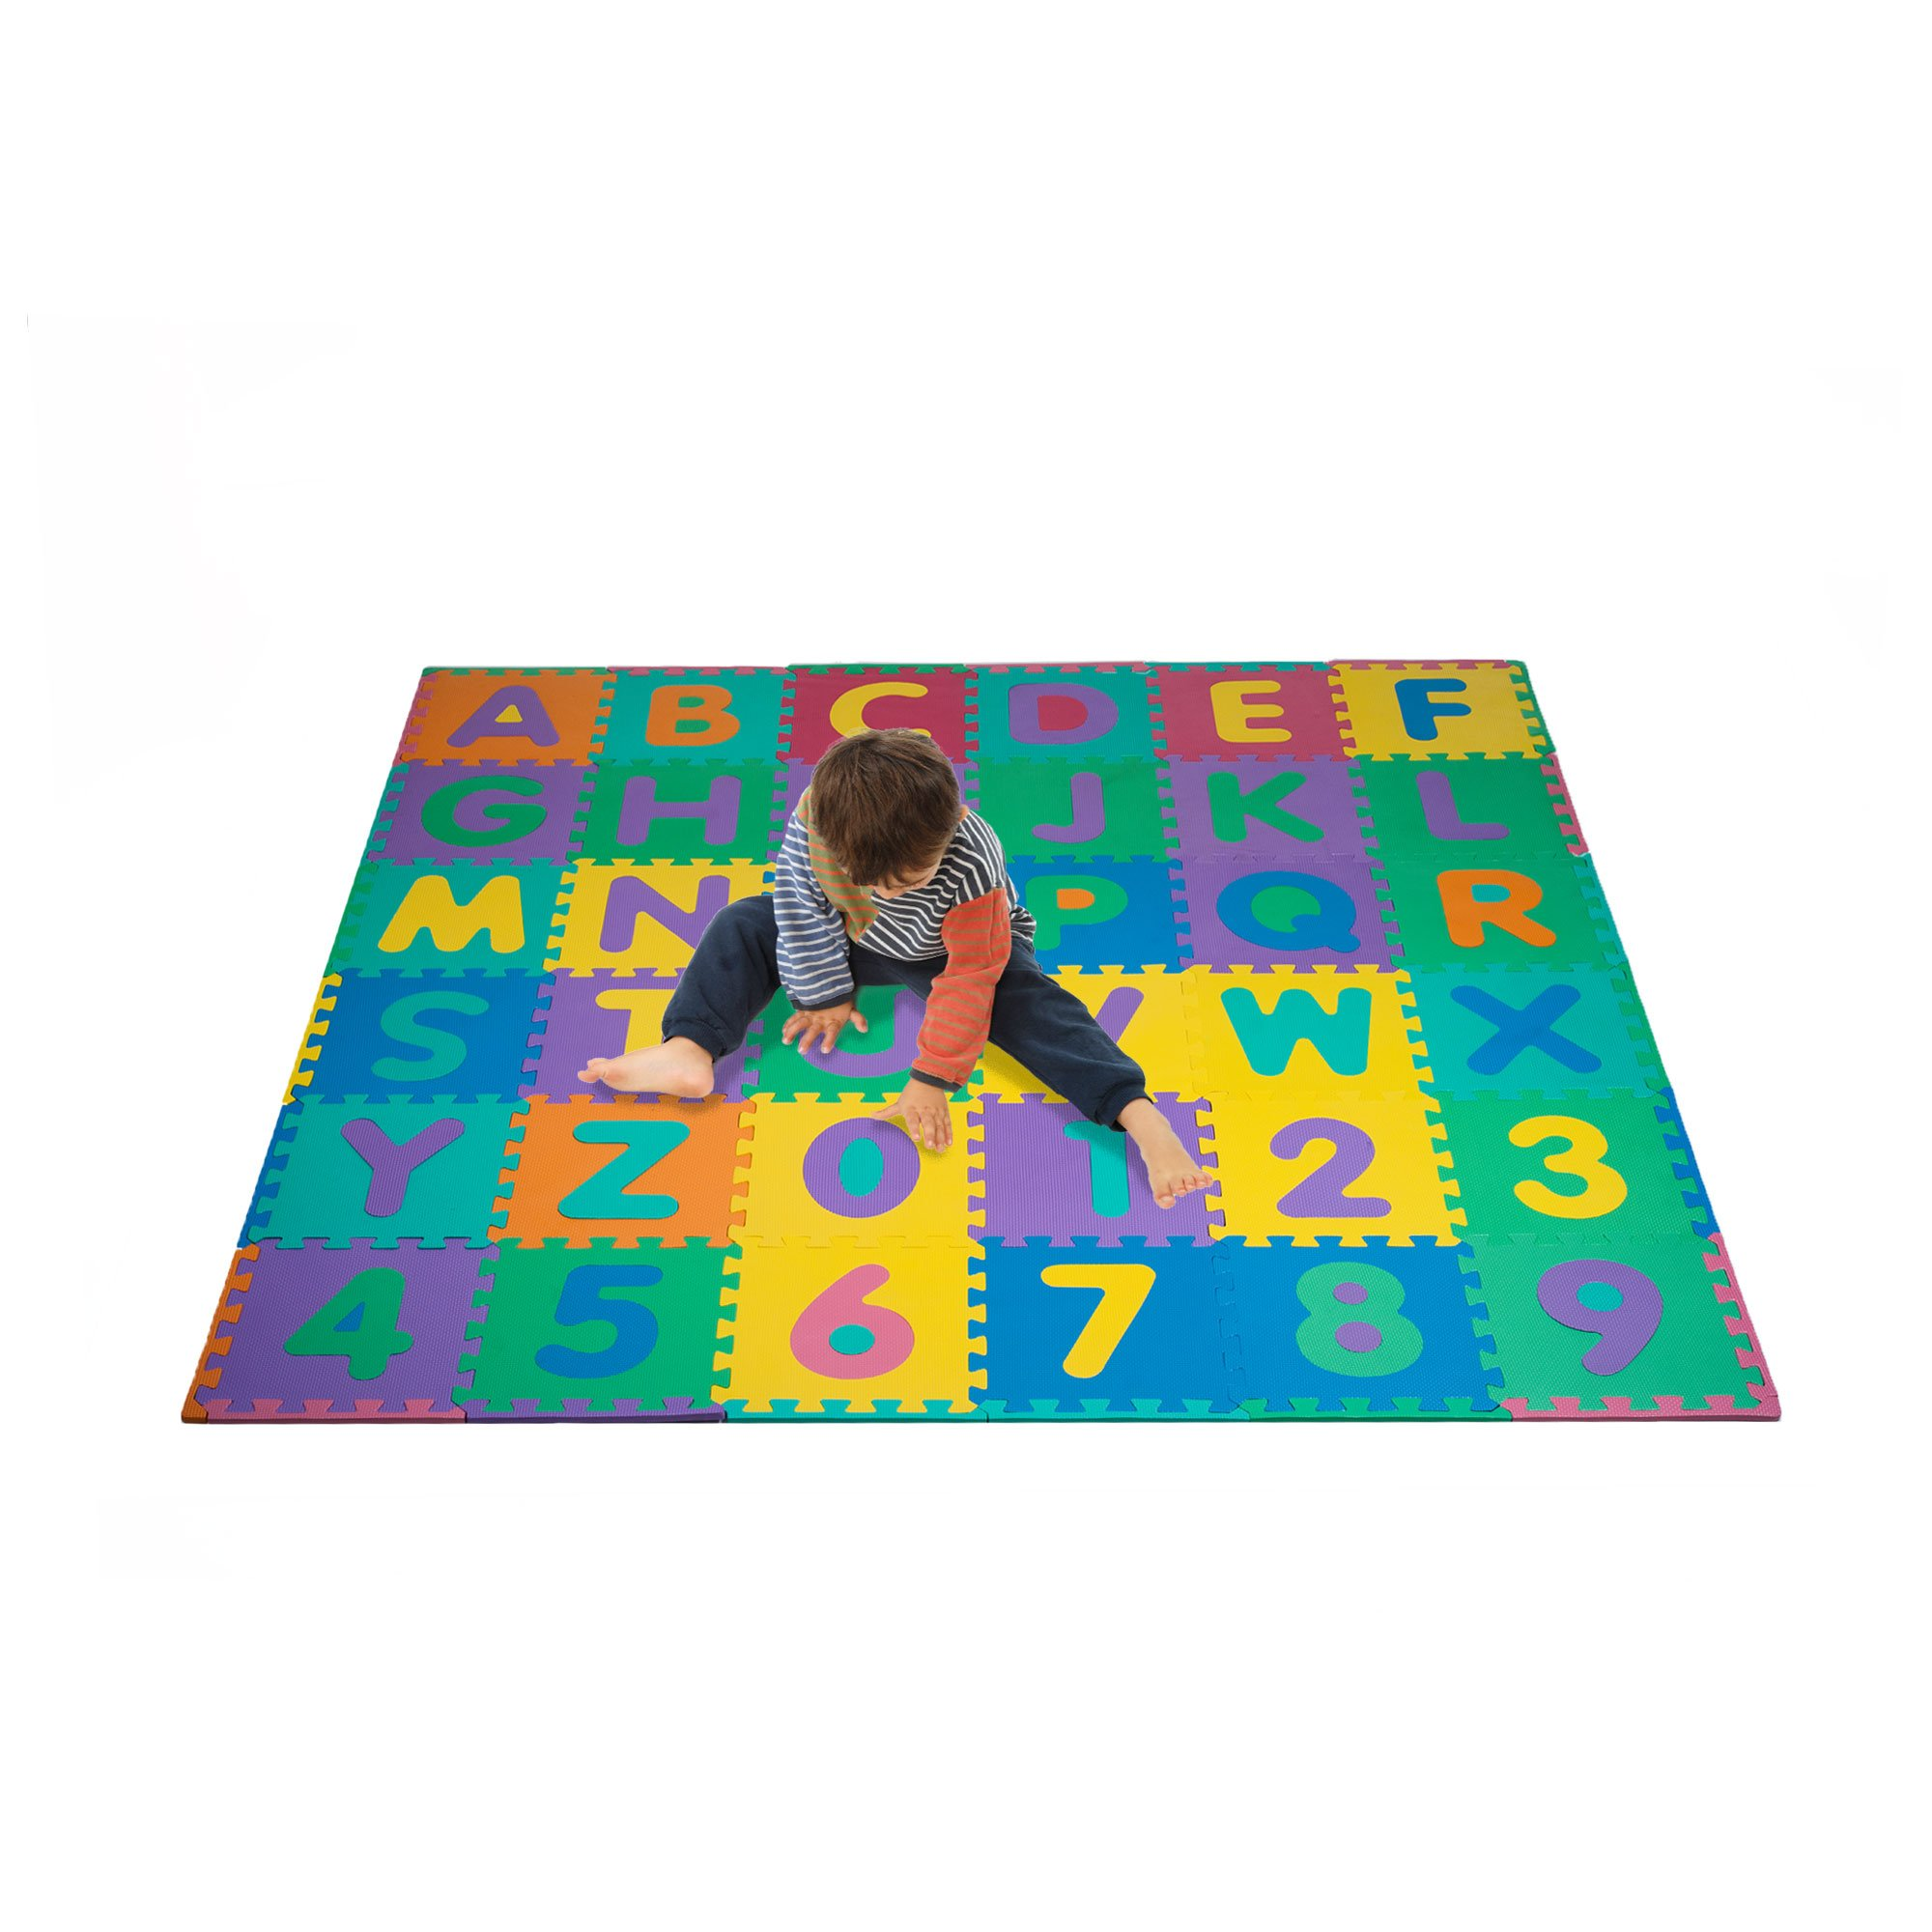 Foam Floor Alphabet and Number Puzzle Mat for Kids, 96-Piece by Hey! Play!